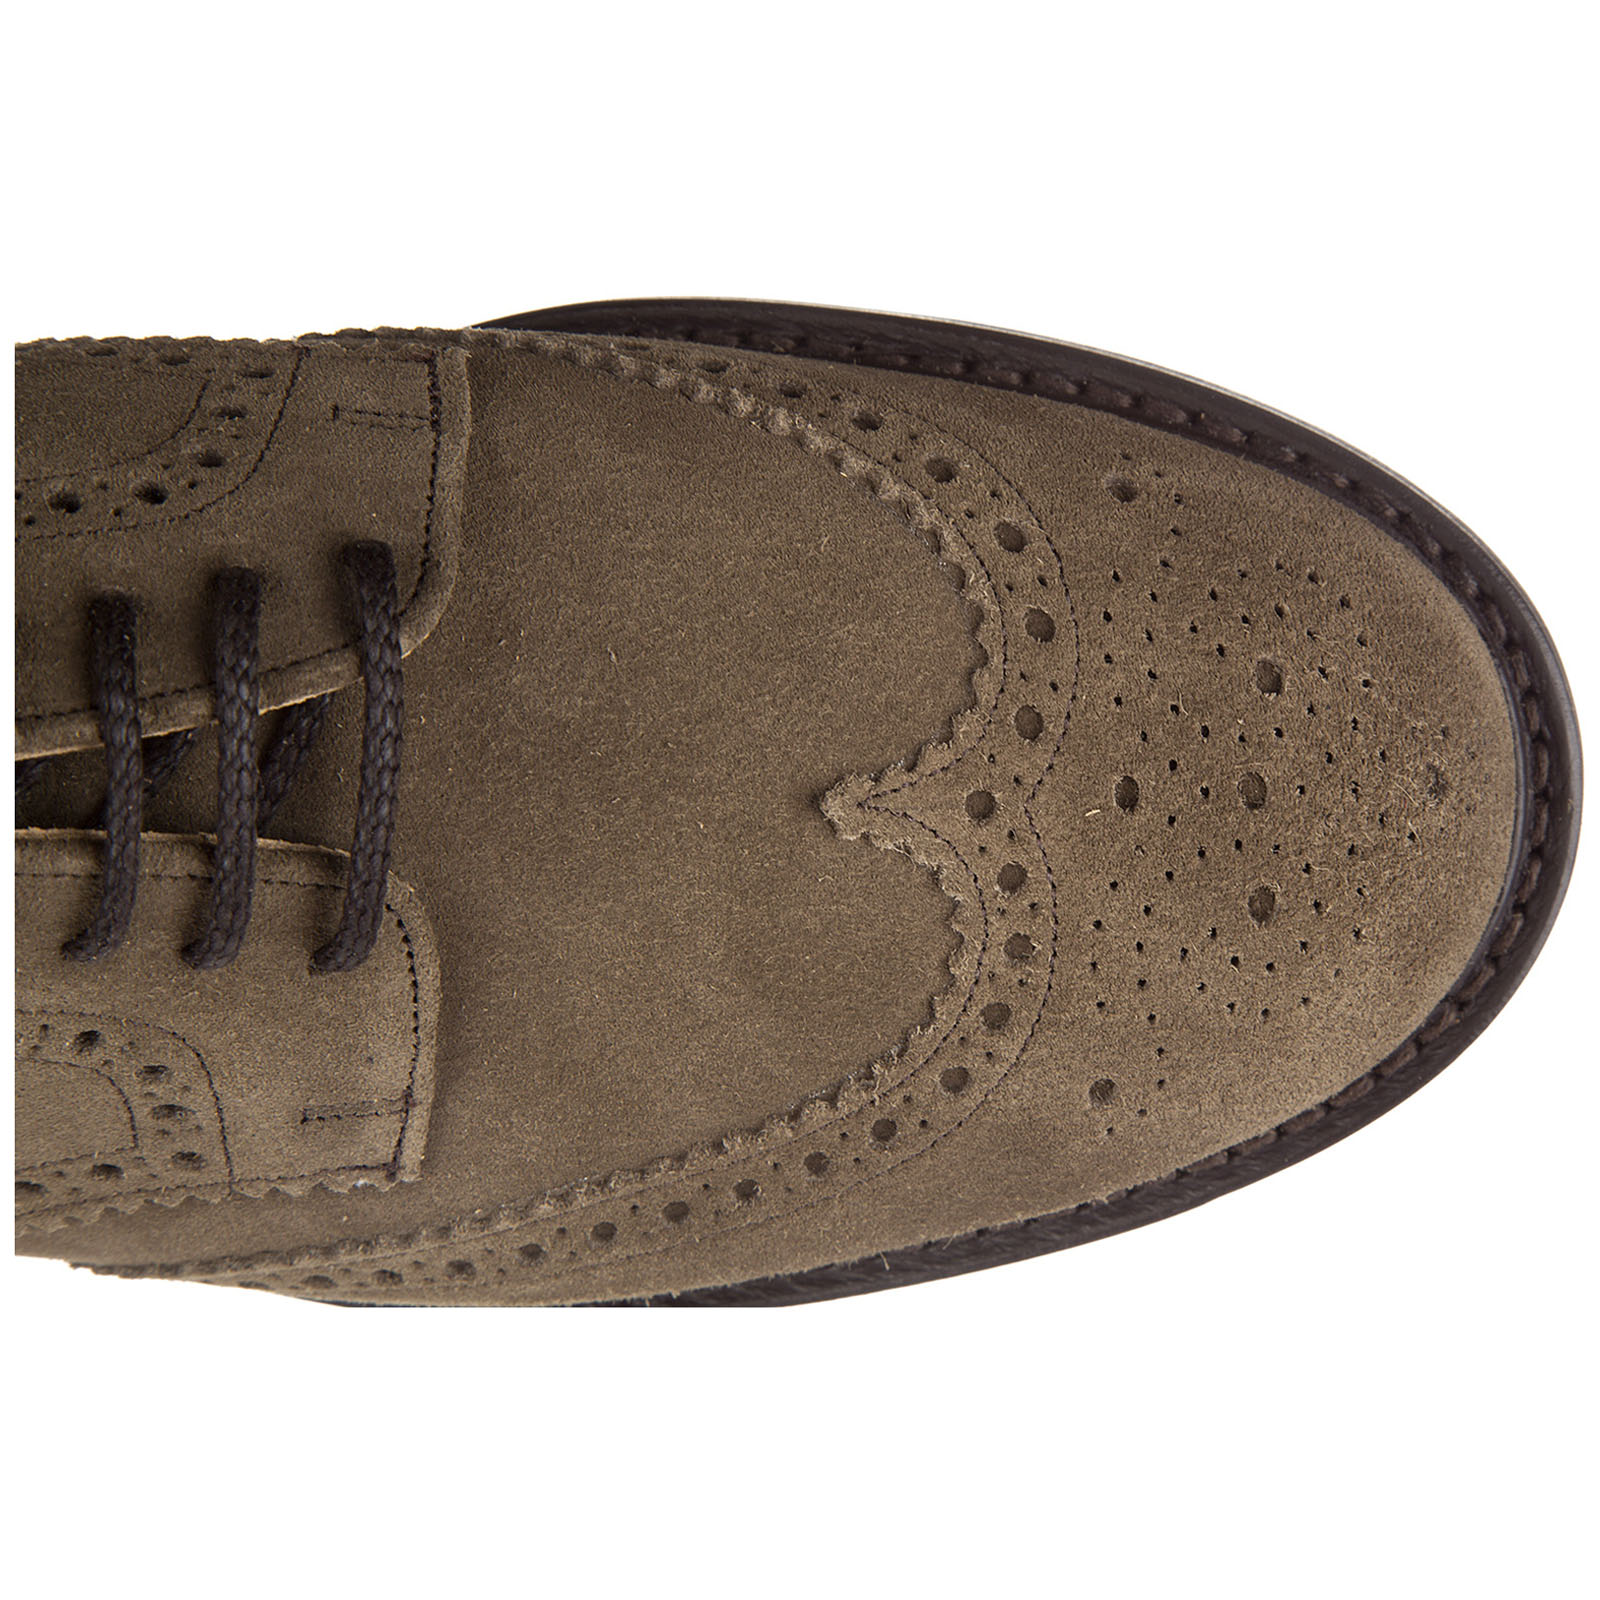 Men's classic suede lace up laced formal shoes newark brogue